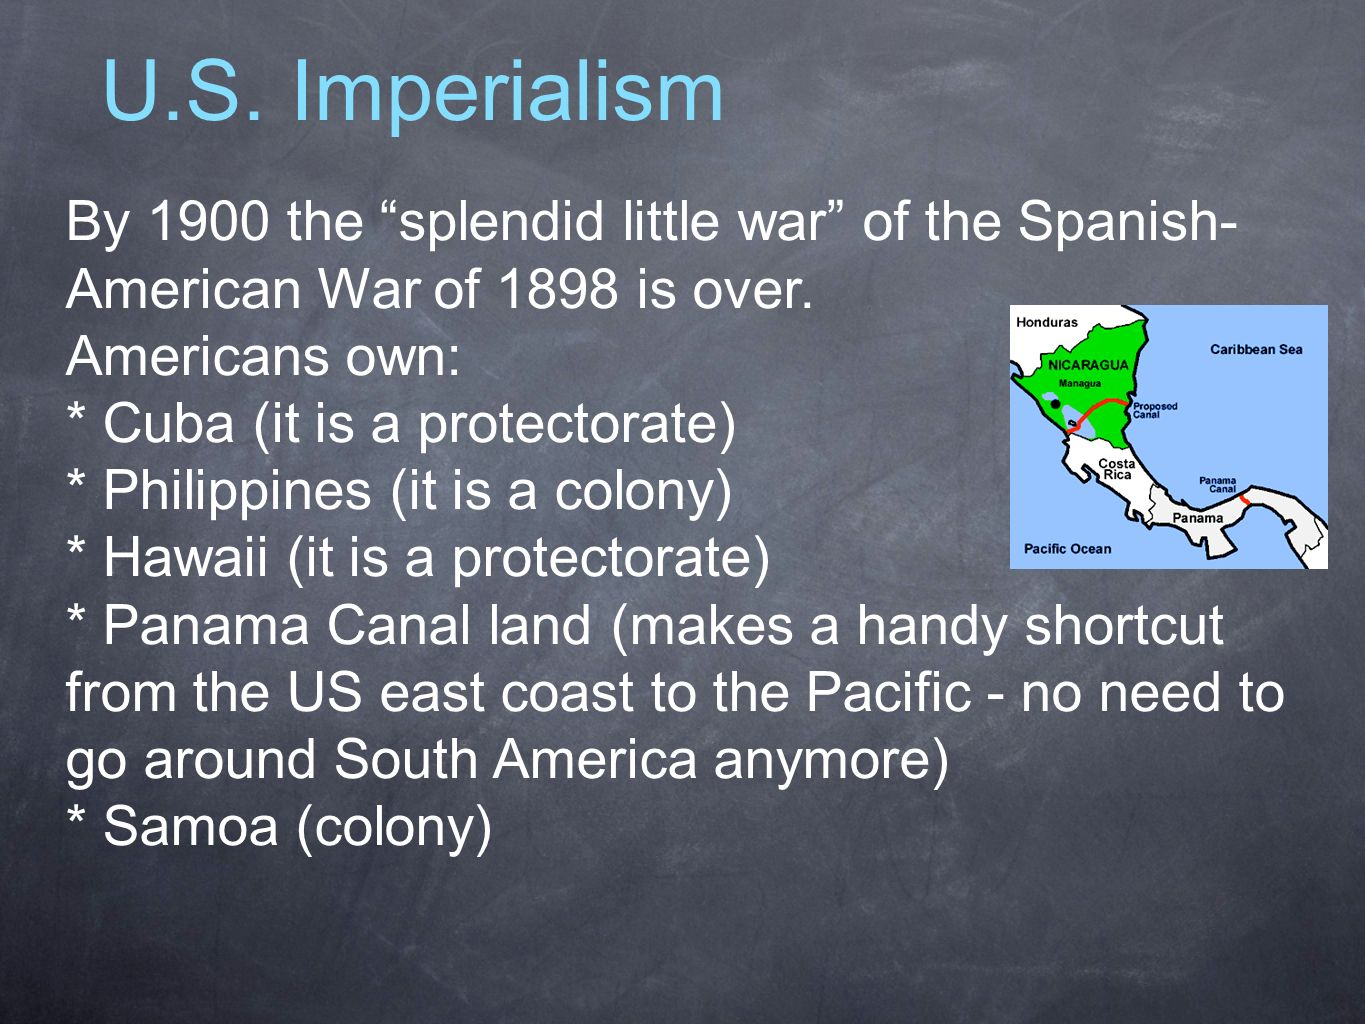 U.S. Imperialism By 1900 the splendid little war of the Spanish-American War of 1898 is over. Americans own: